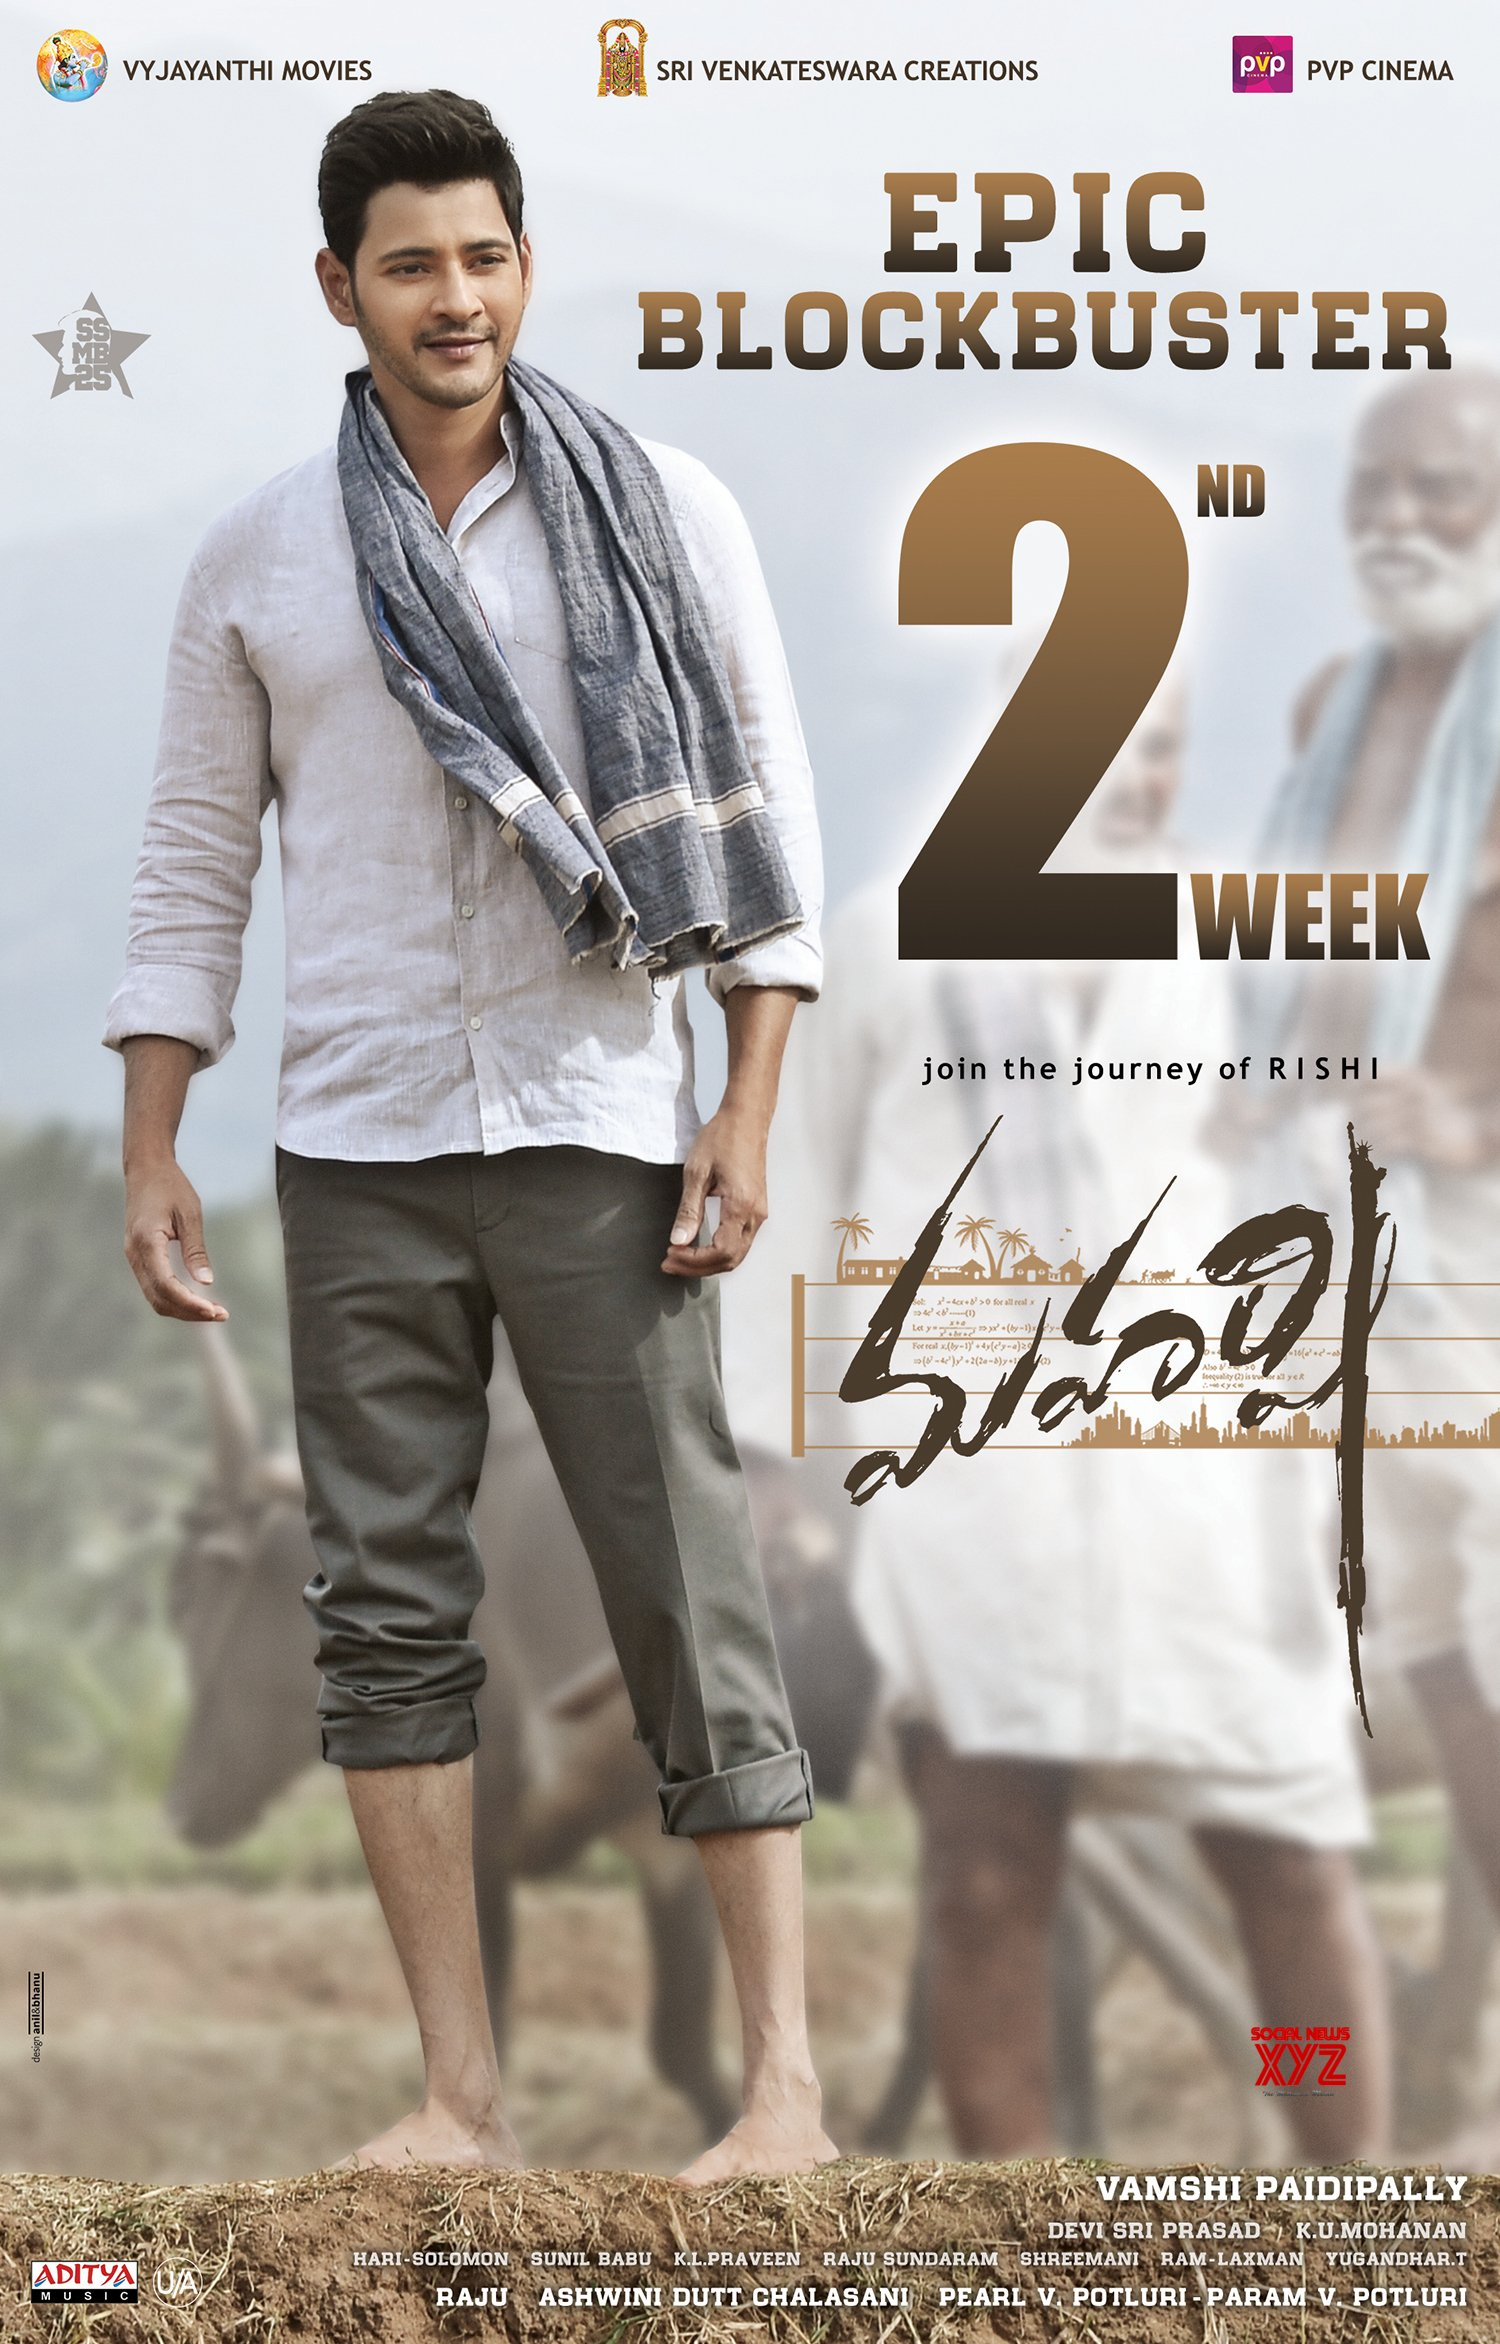 Mahesh Babu's Maharshi Movie Second Week HD Posters